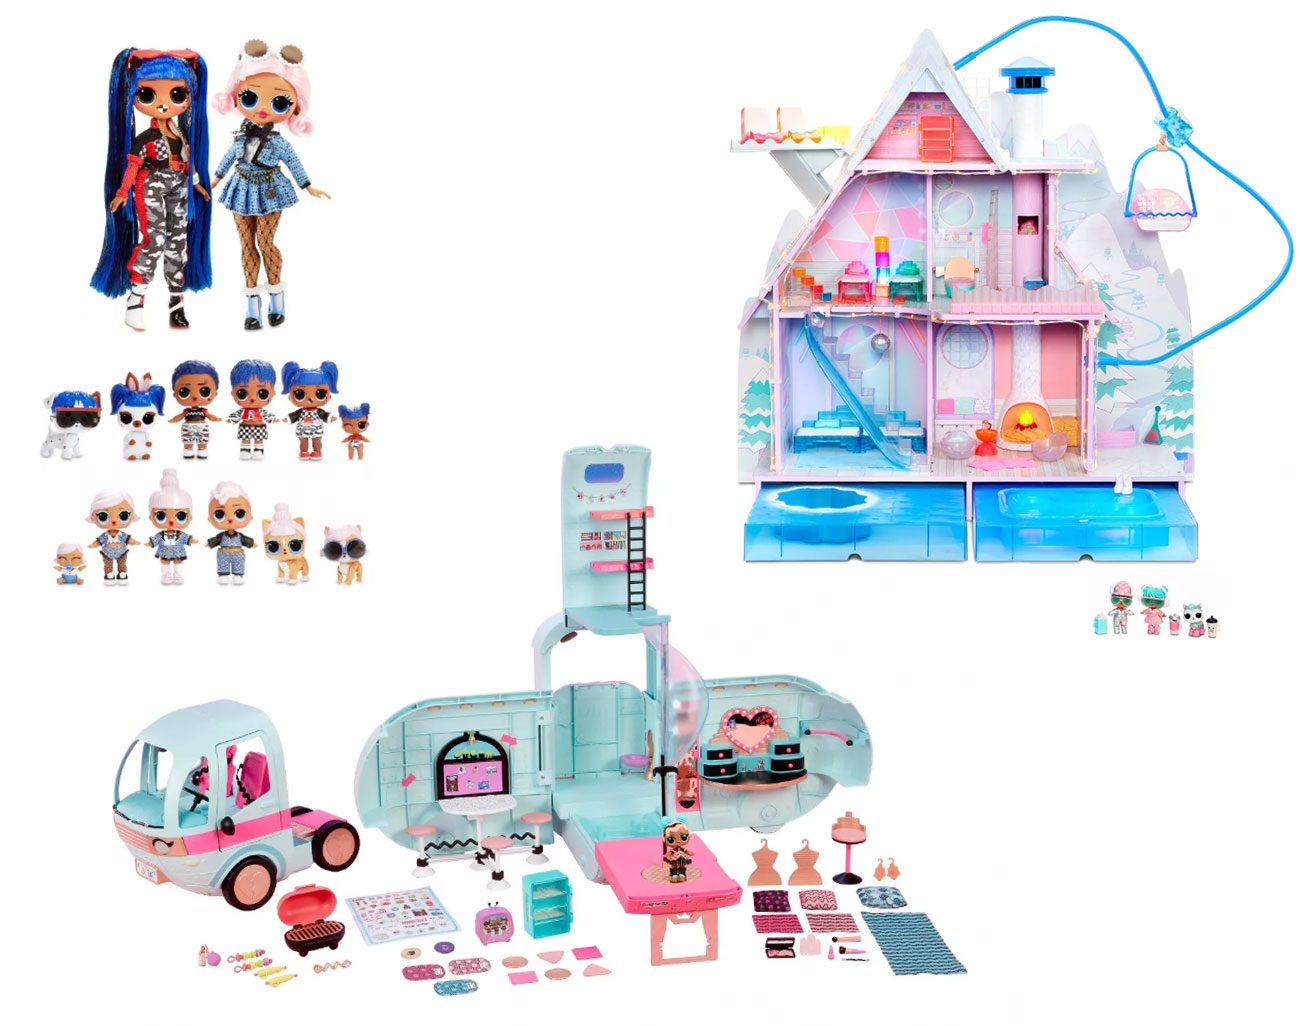 Assorted dolls, the dollhouse and camper sets